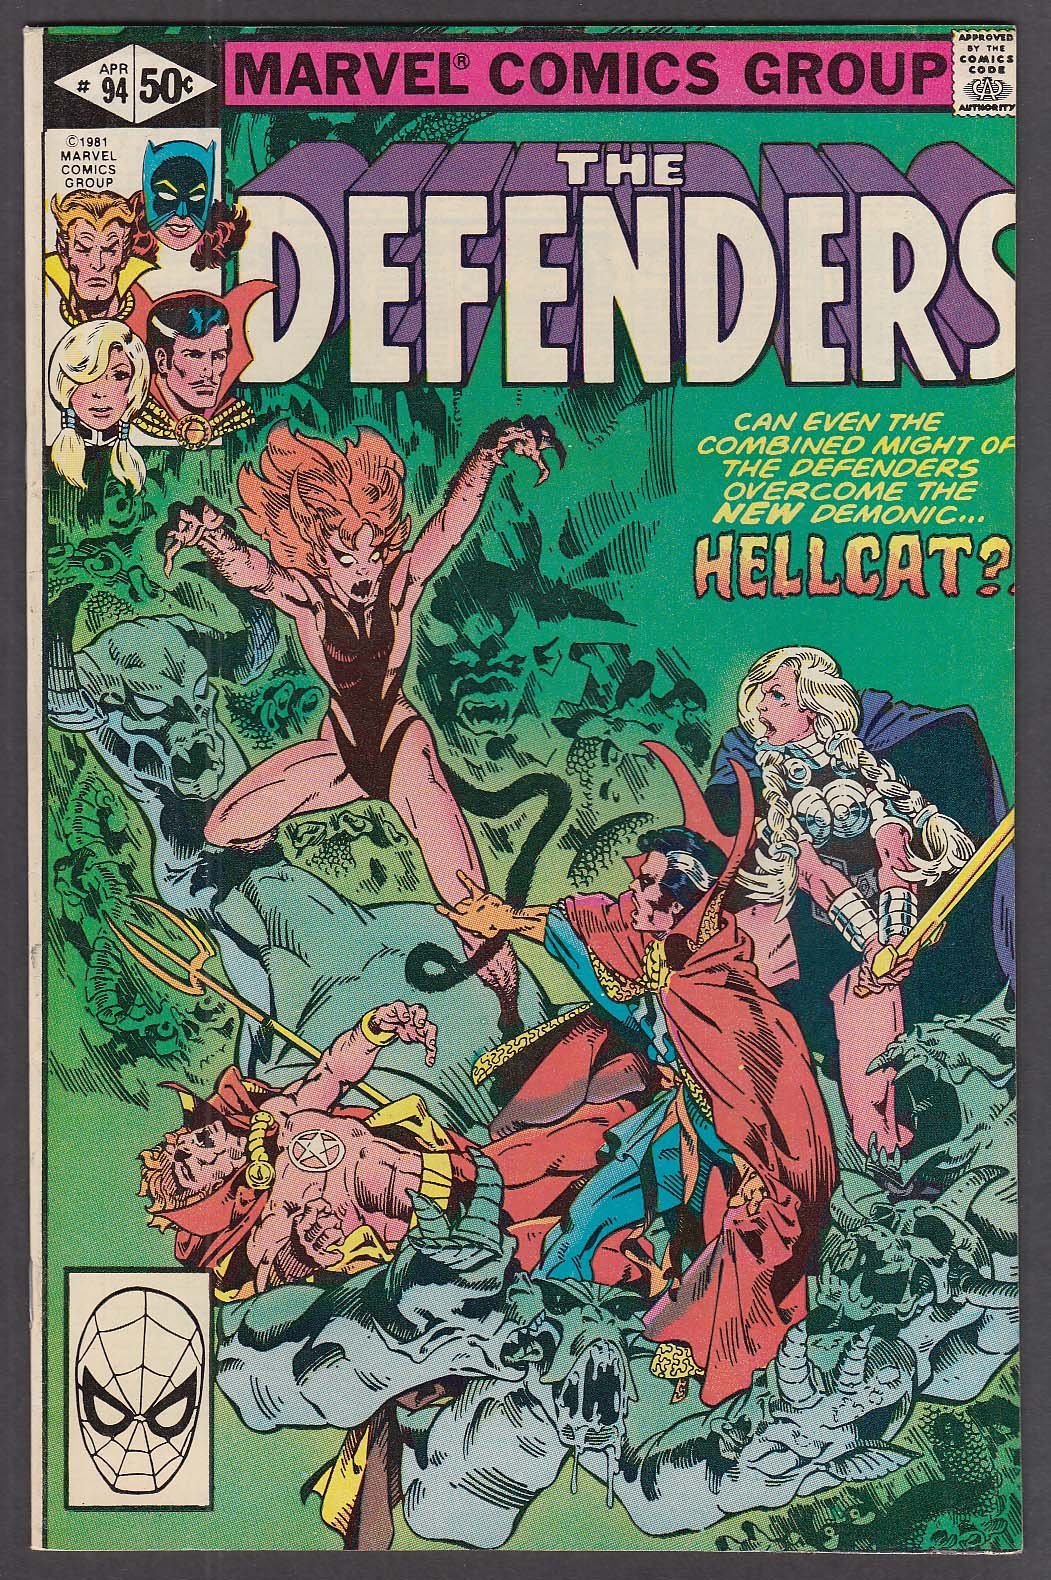 Image for The DEFENDERS #94 Marvel comic book 4 1981